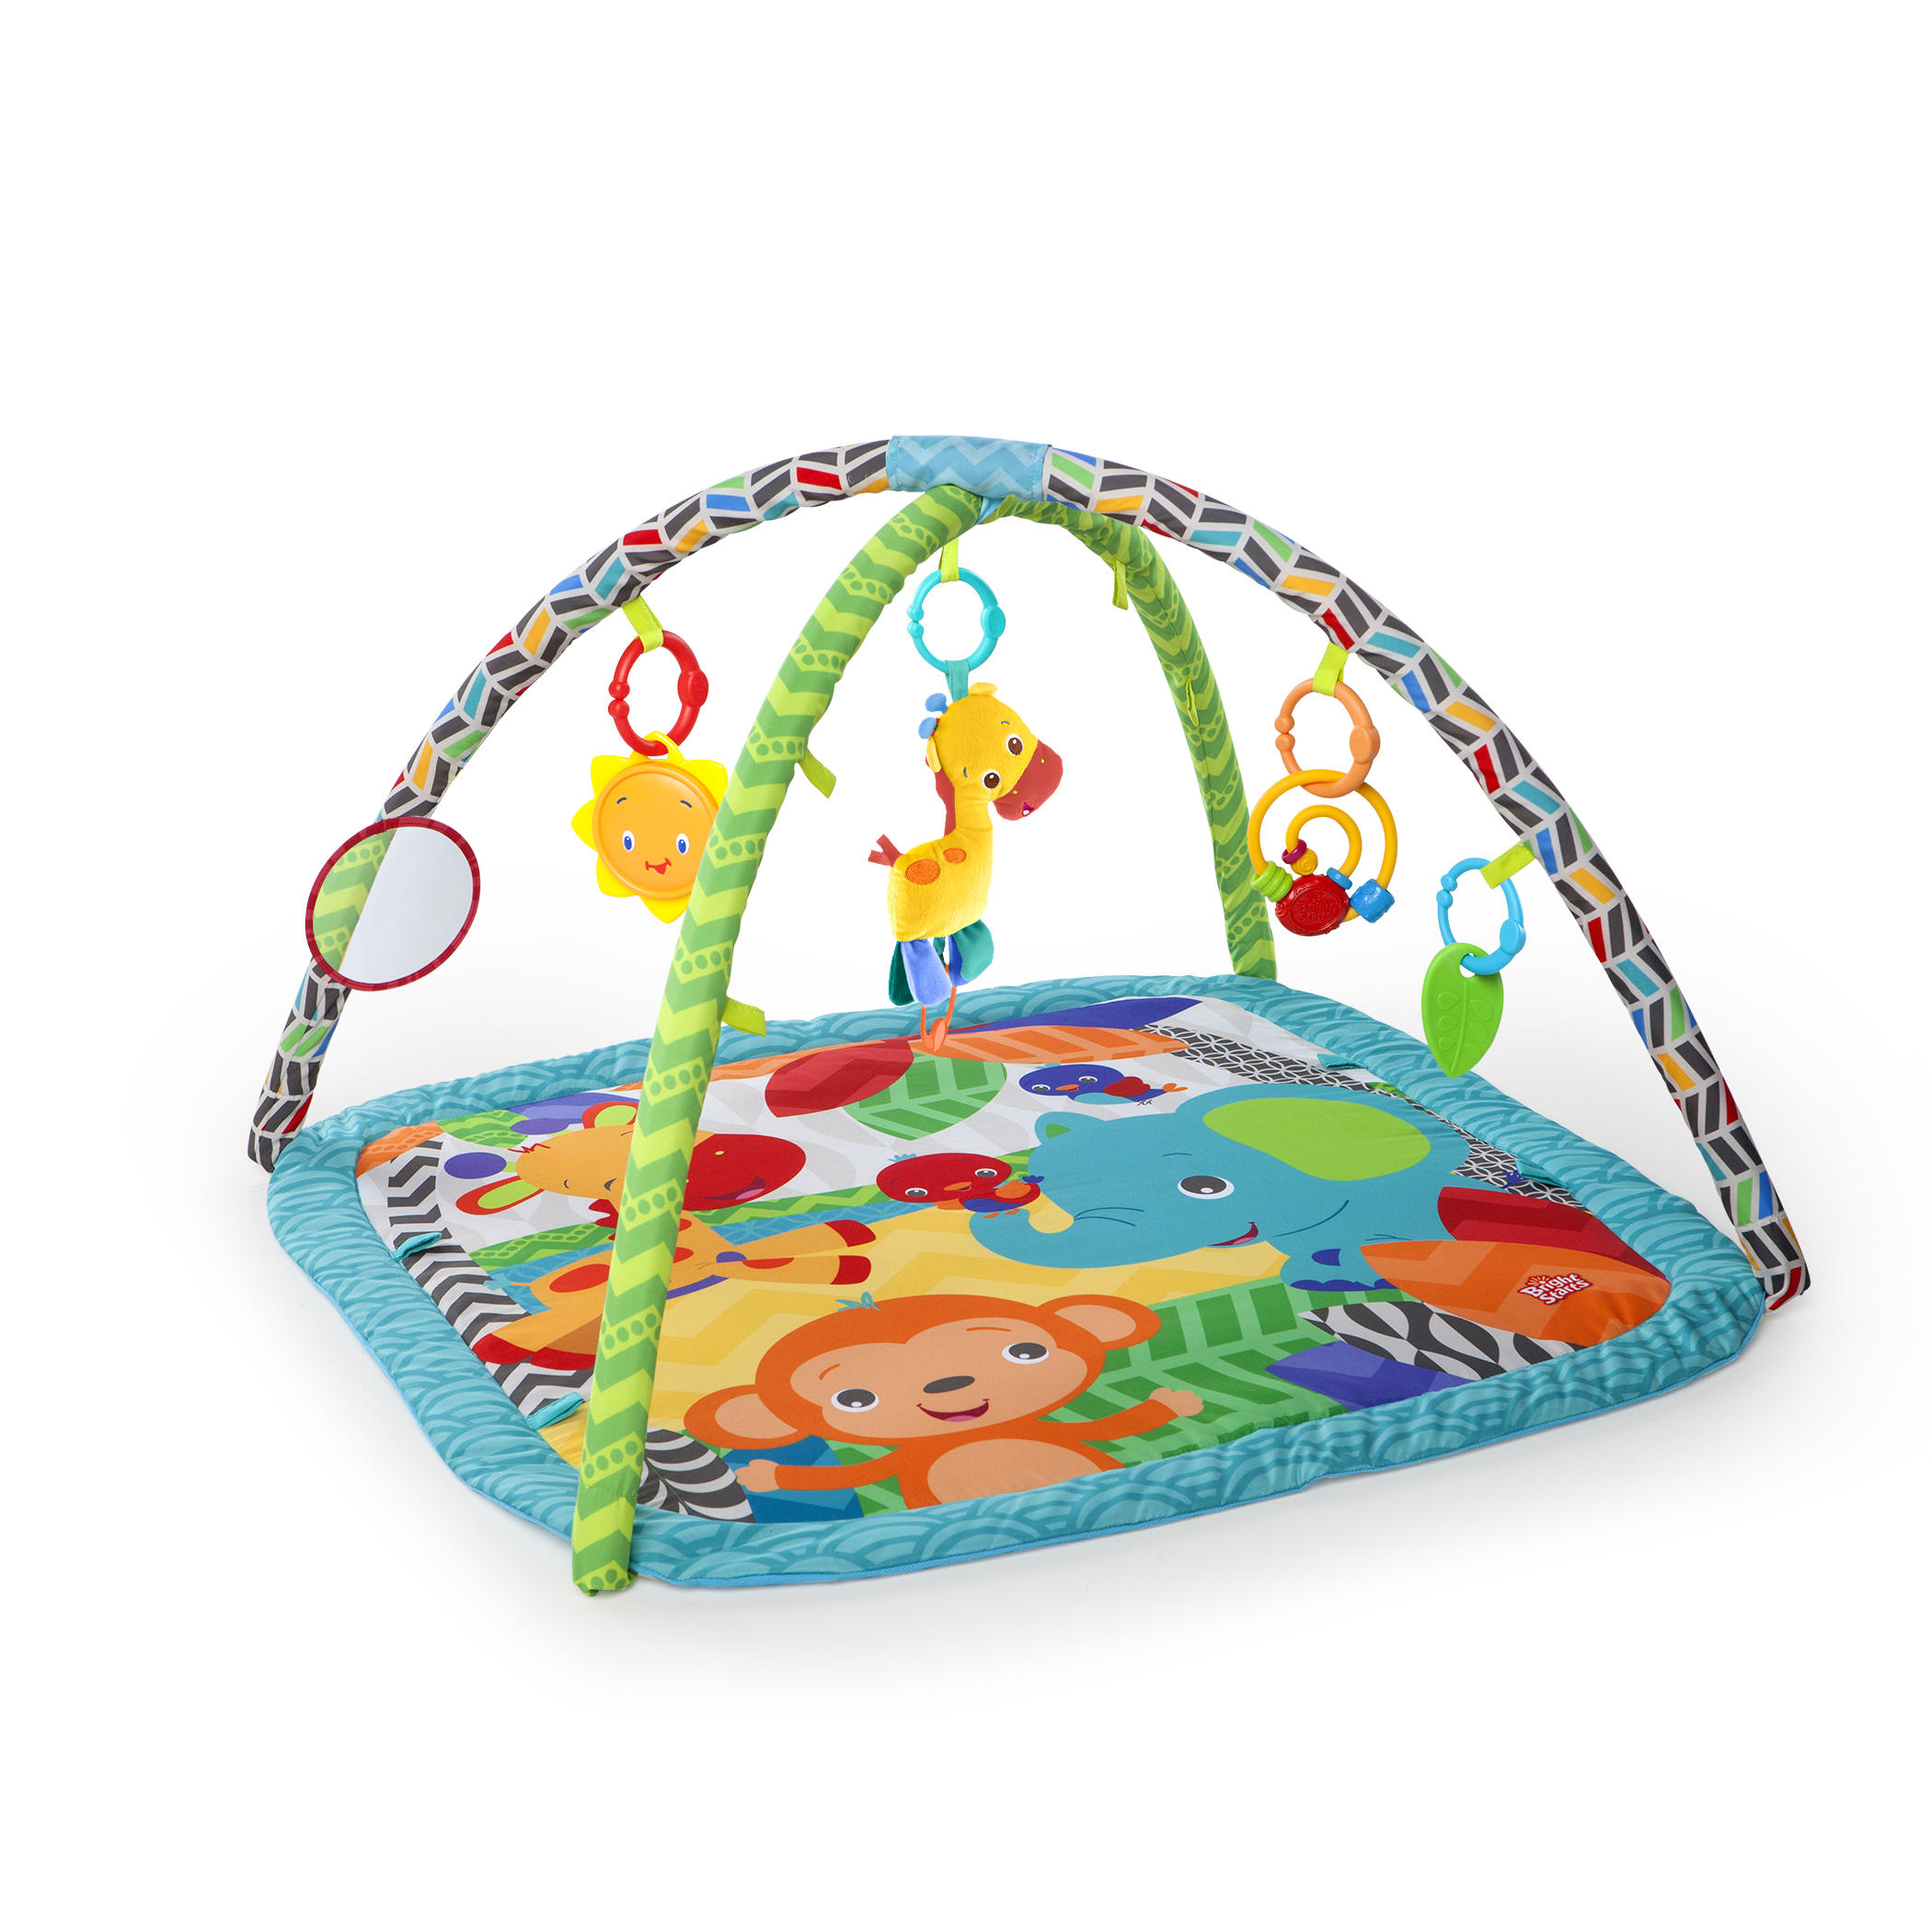 Zippy Zoo™ Activity Gym